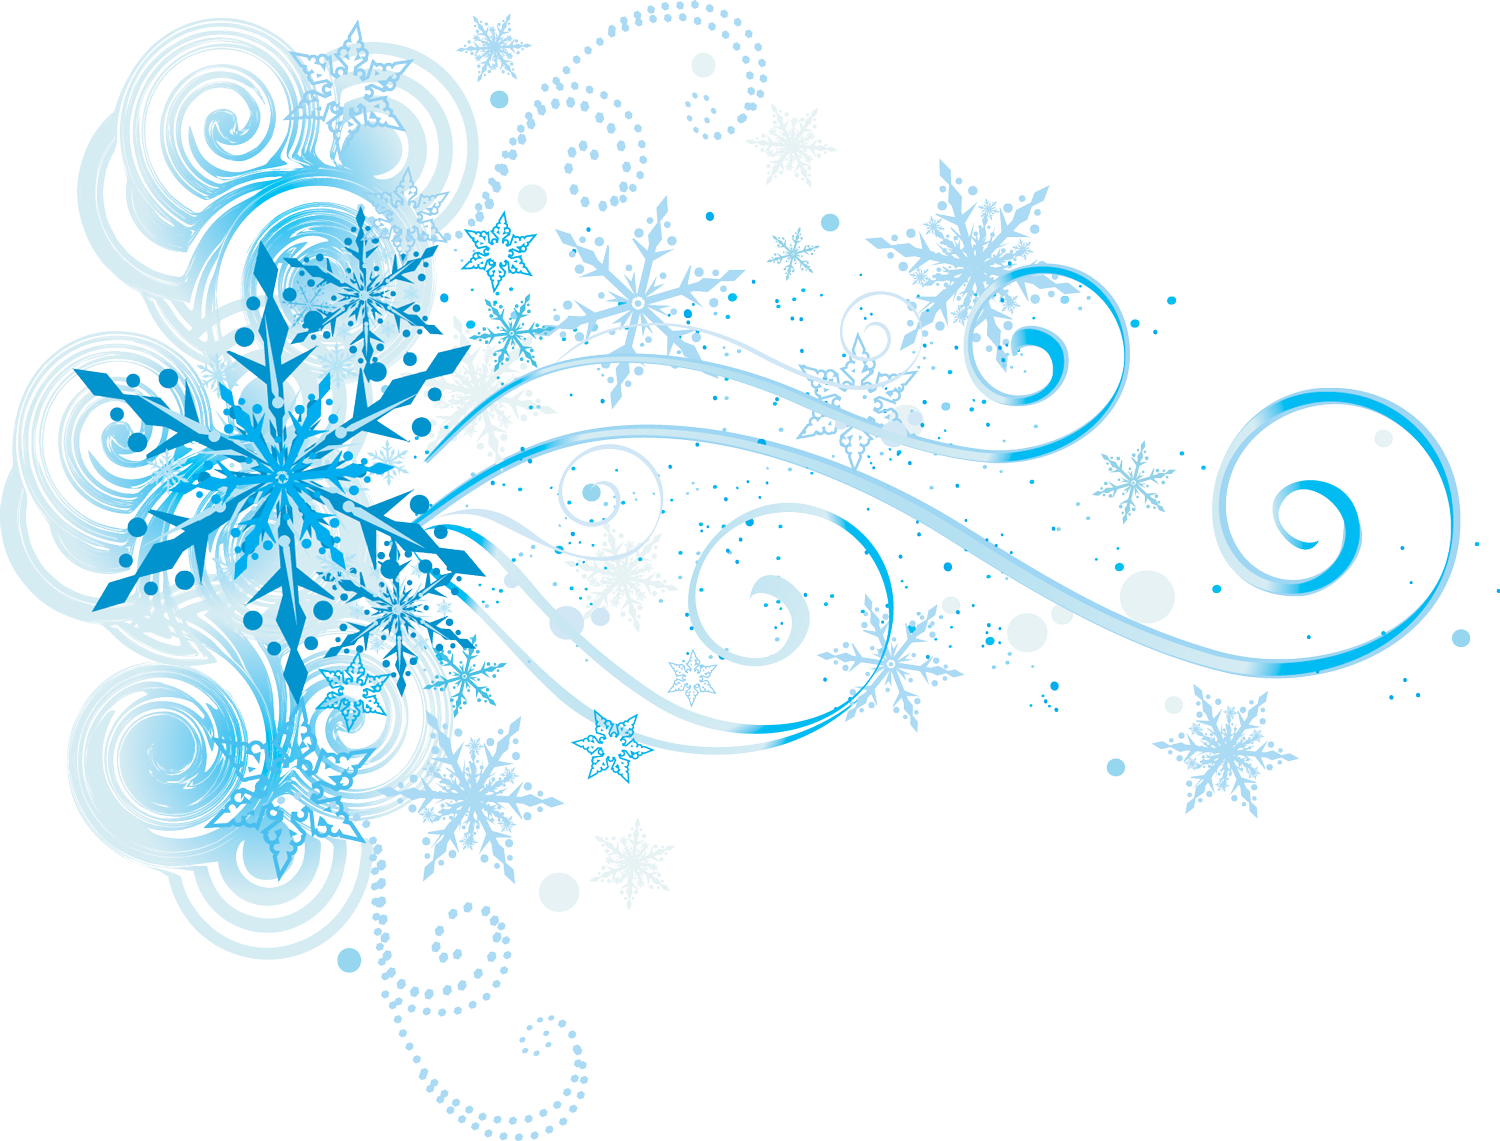 Snowflake nature wallpaper free clipart png free wrap around the shoulder with ribbons flowing down the arm ... png free